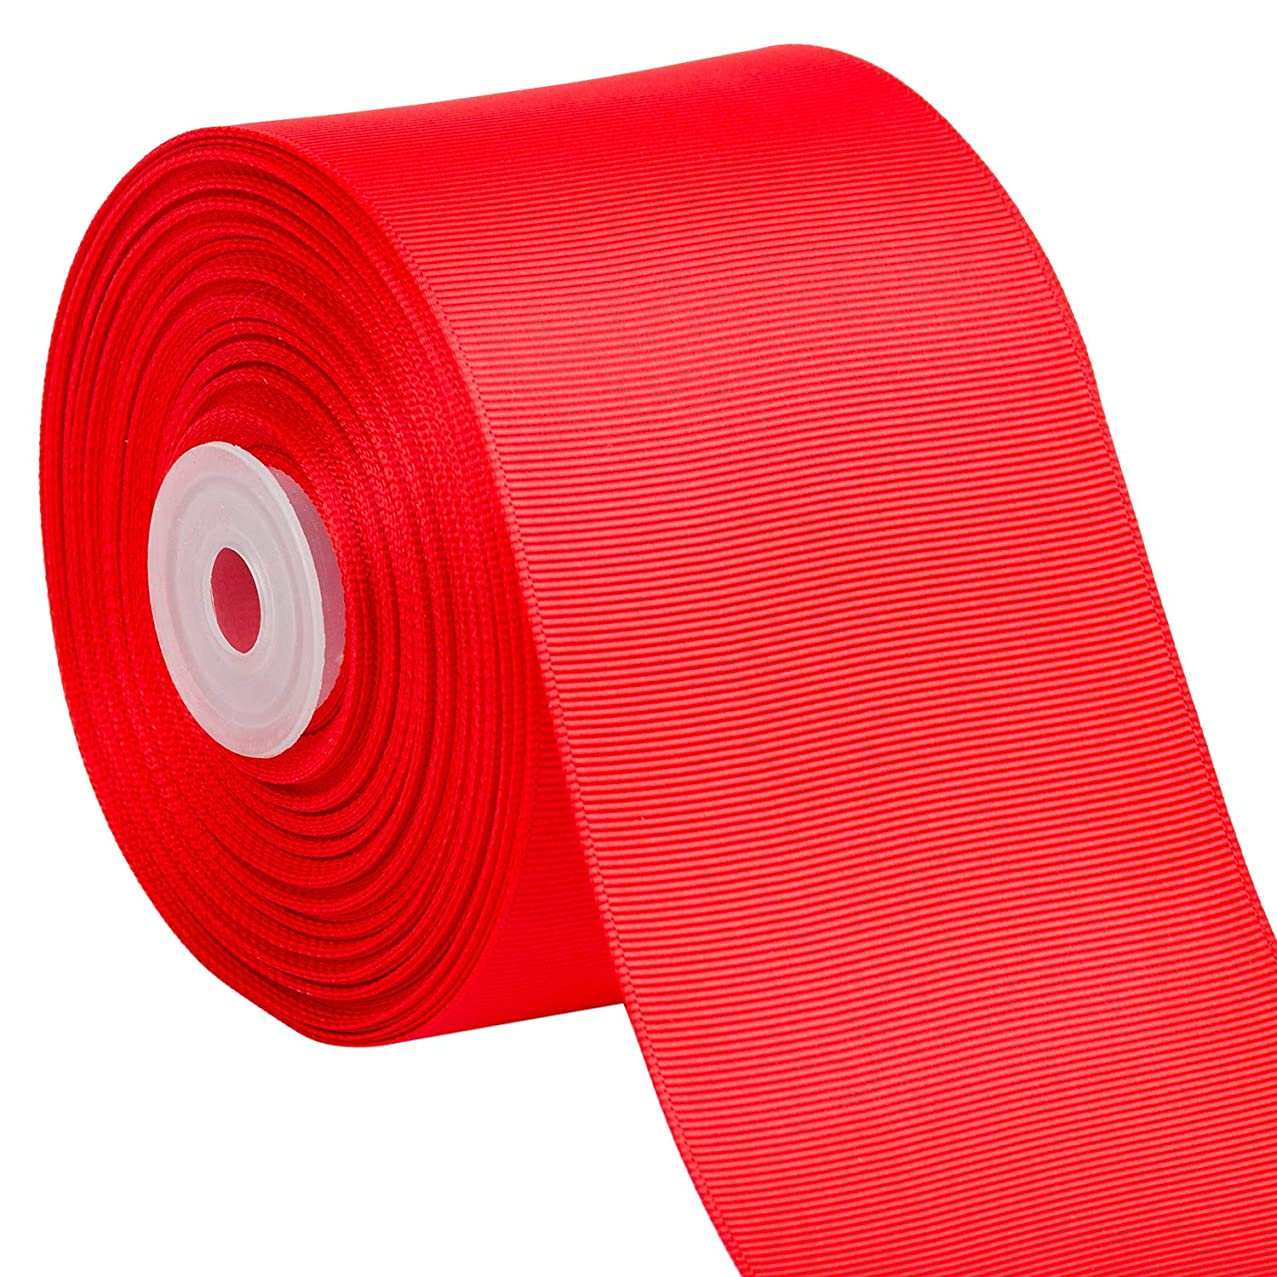 LaRibbons 25 Yards 3 Inch Wide Solid Color Grosgrain Ribbon for Craft, Gift Wrapping, Hair Bow, Wedding Deco - 252 Hot Red